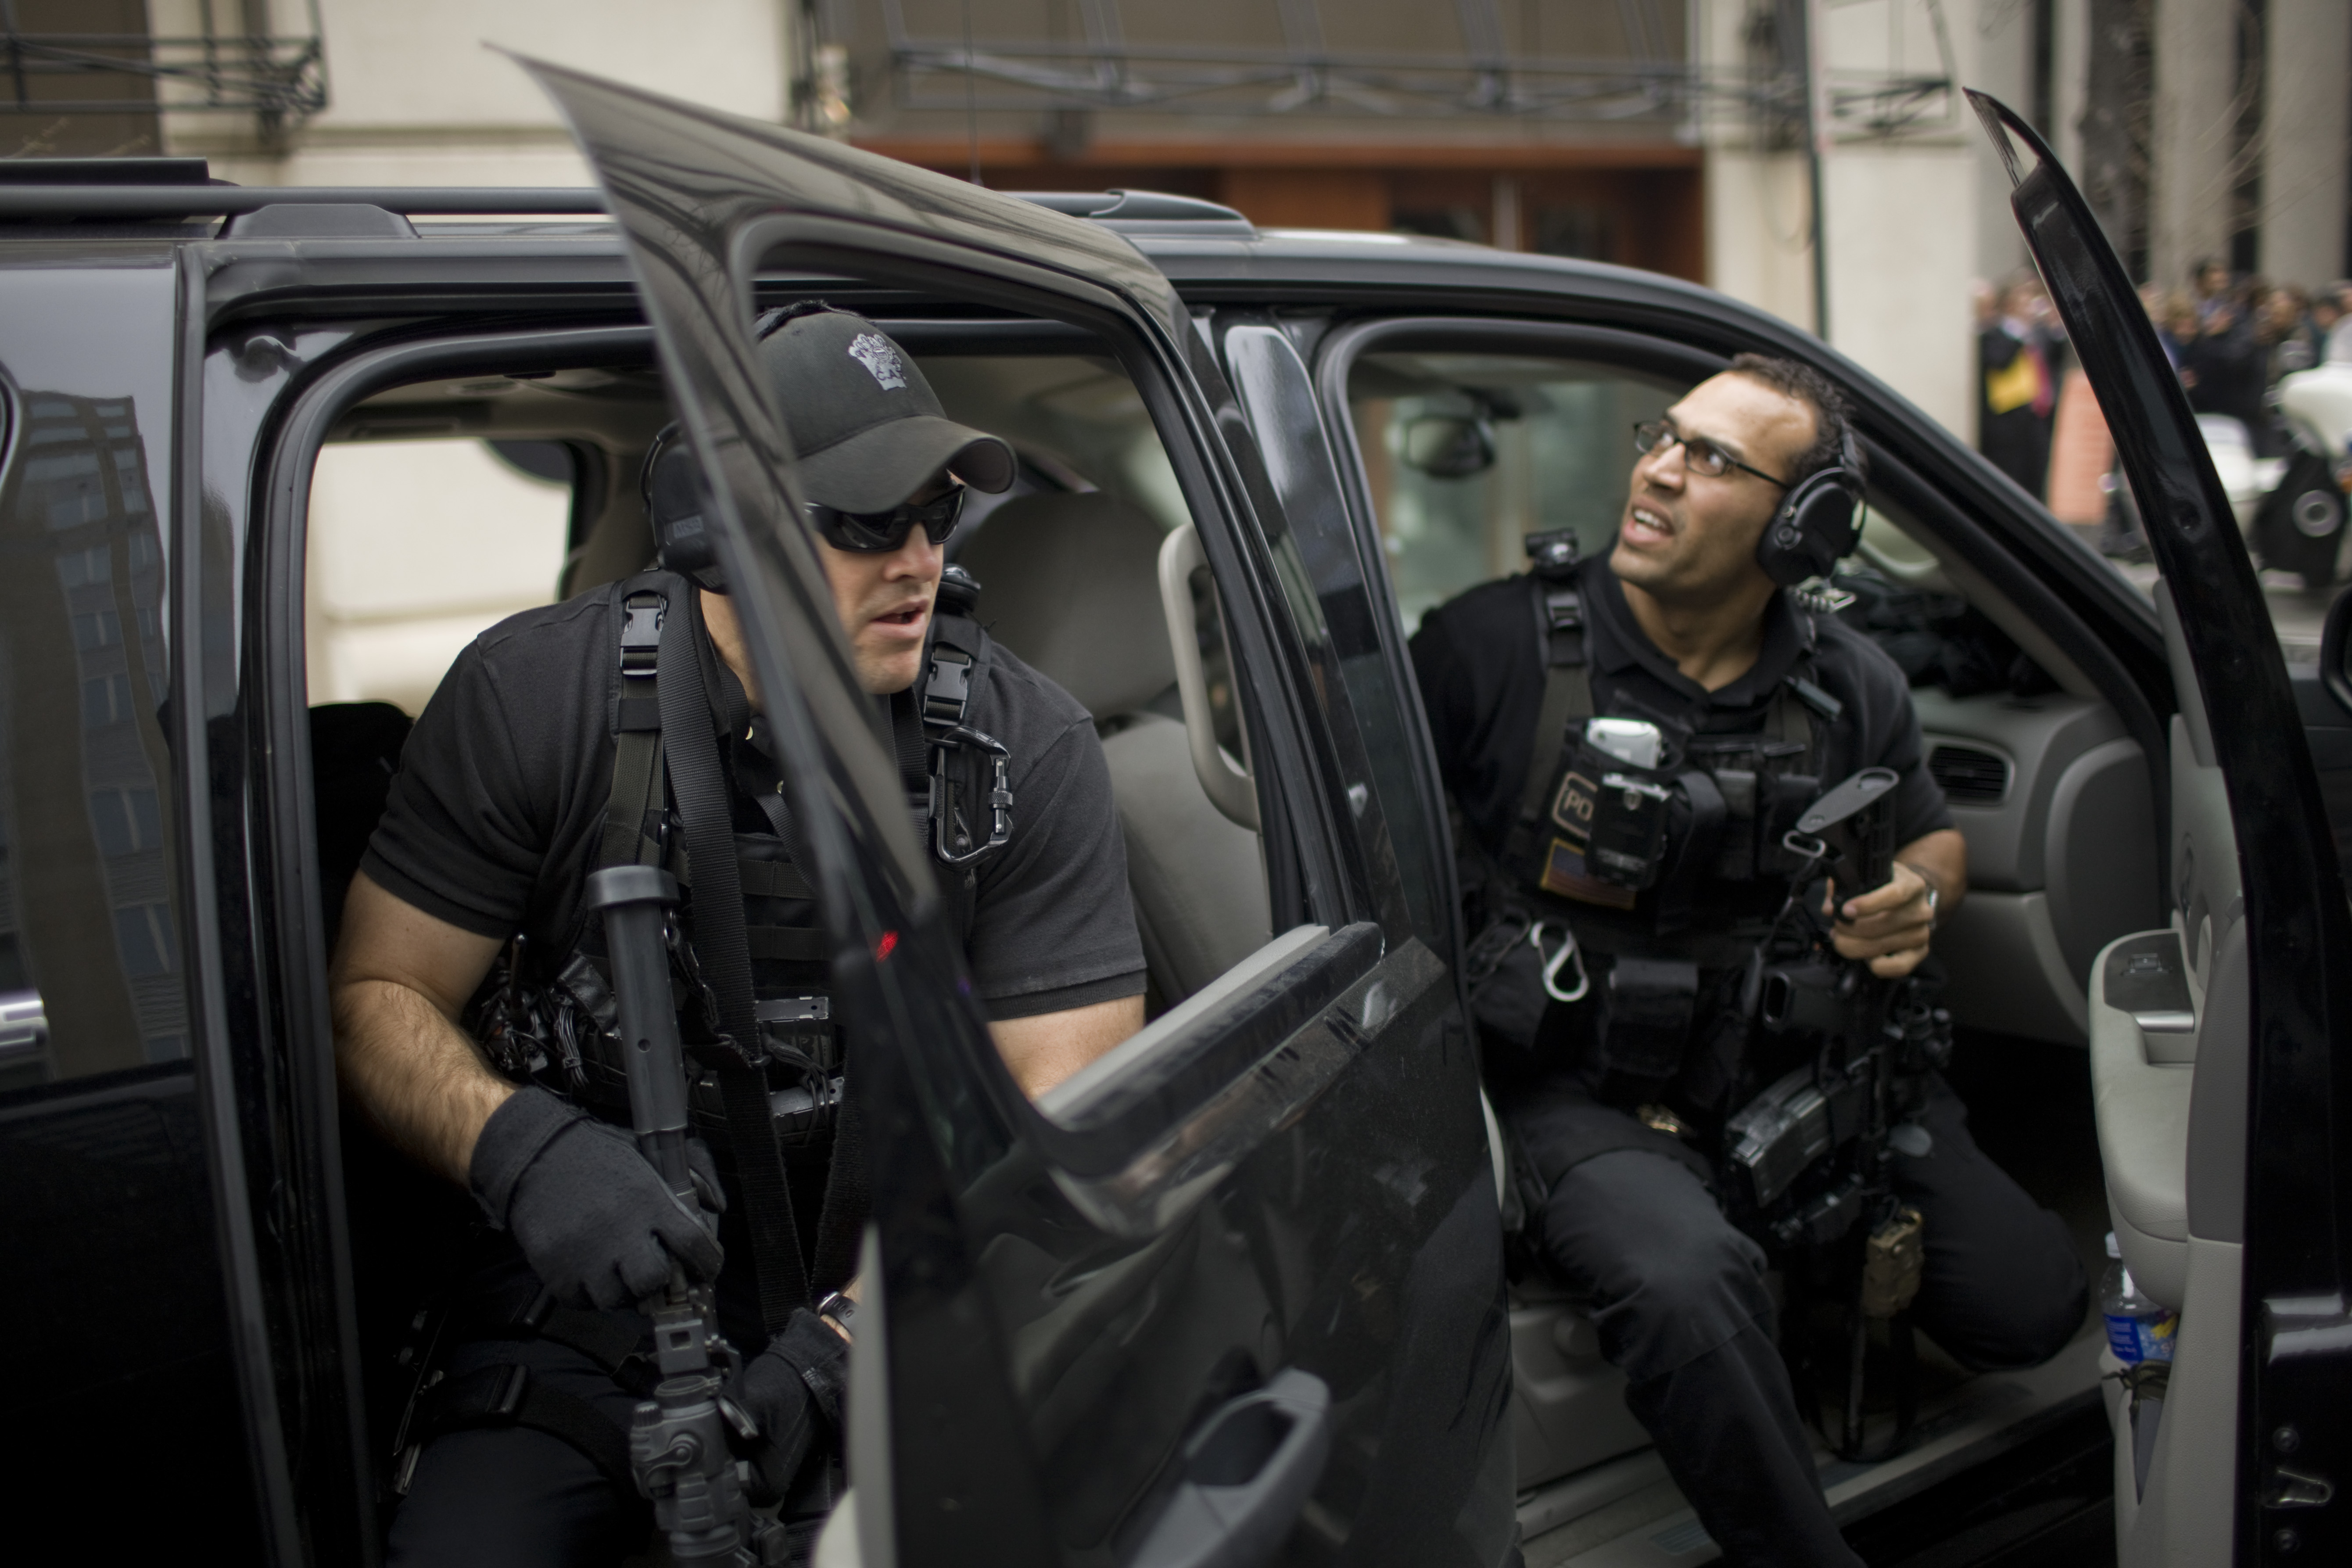 Members of the Counter Asault Division of the US Secret Service keep an eye on the crowd as President Barack Obama departs the Annual Legislative Conference of the United States Hispanic Chamber of Commerce in Washington on March 10, 2009.